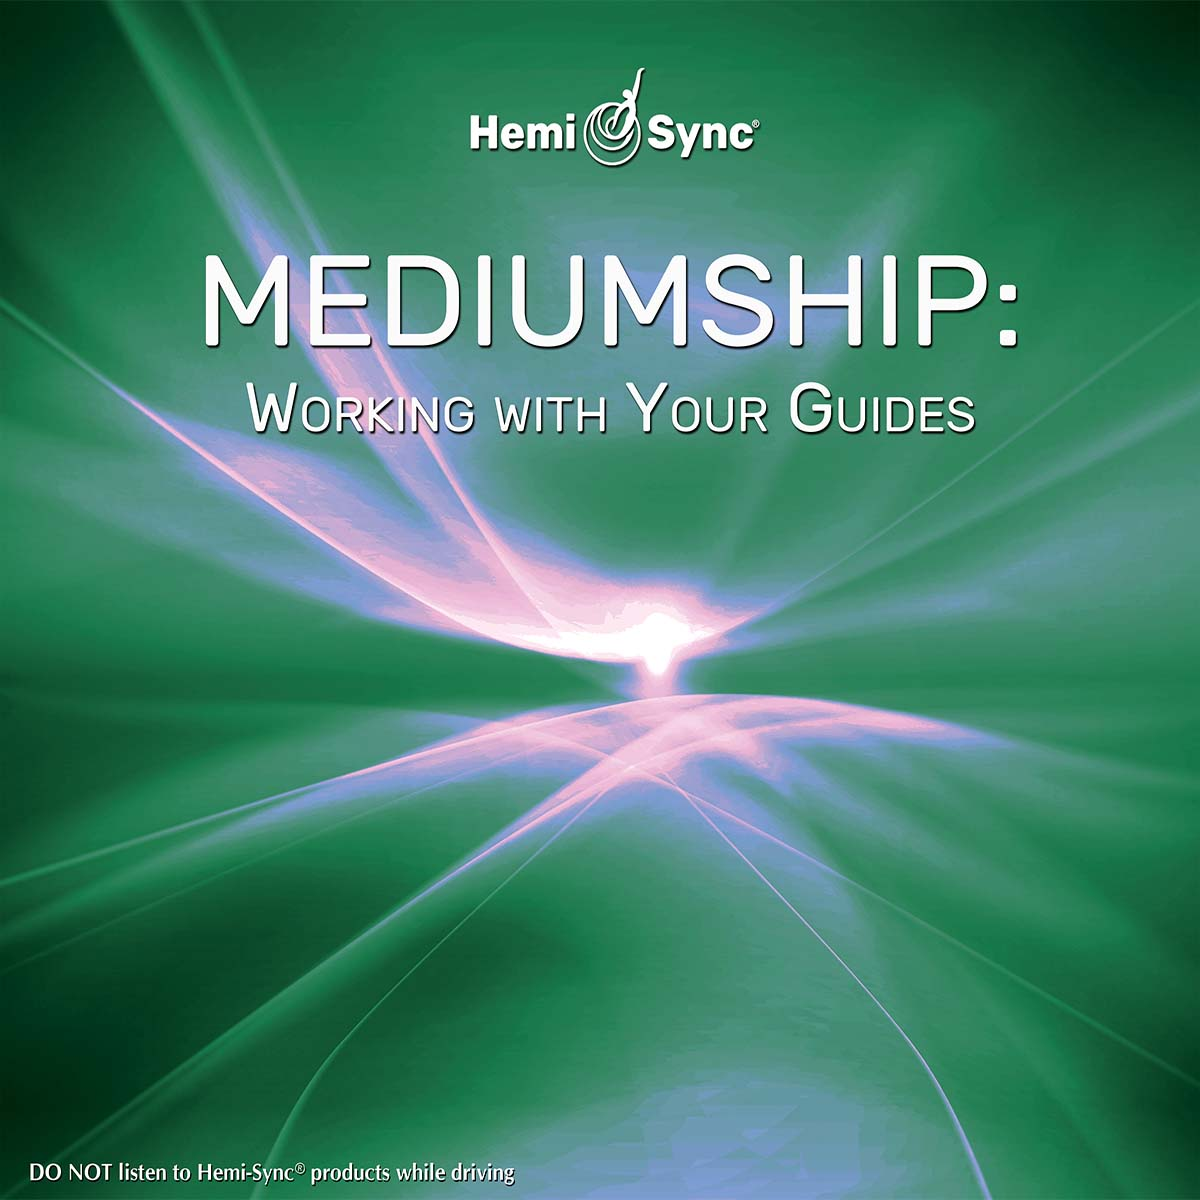 Mediumship-Working-With-Guides_2020.jpg